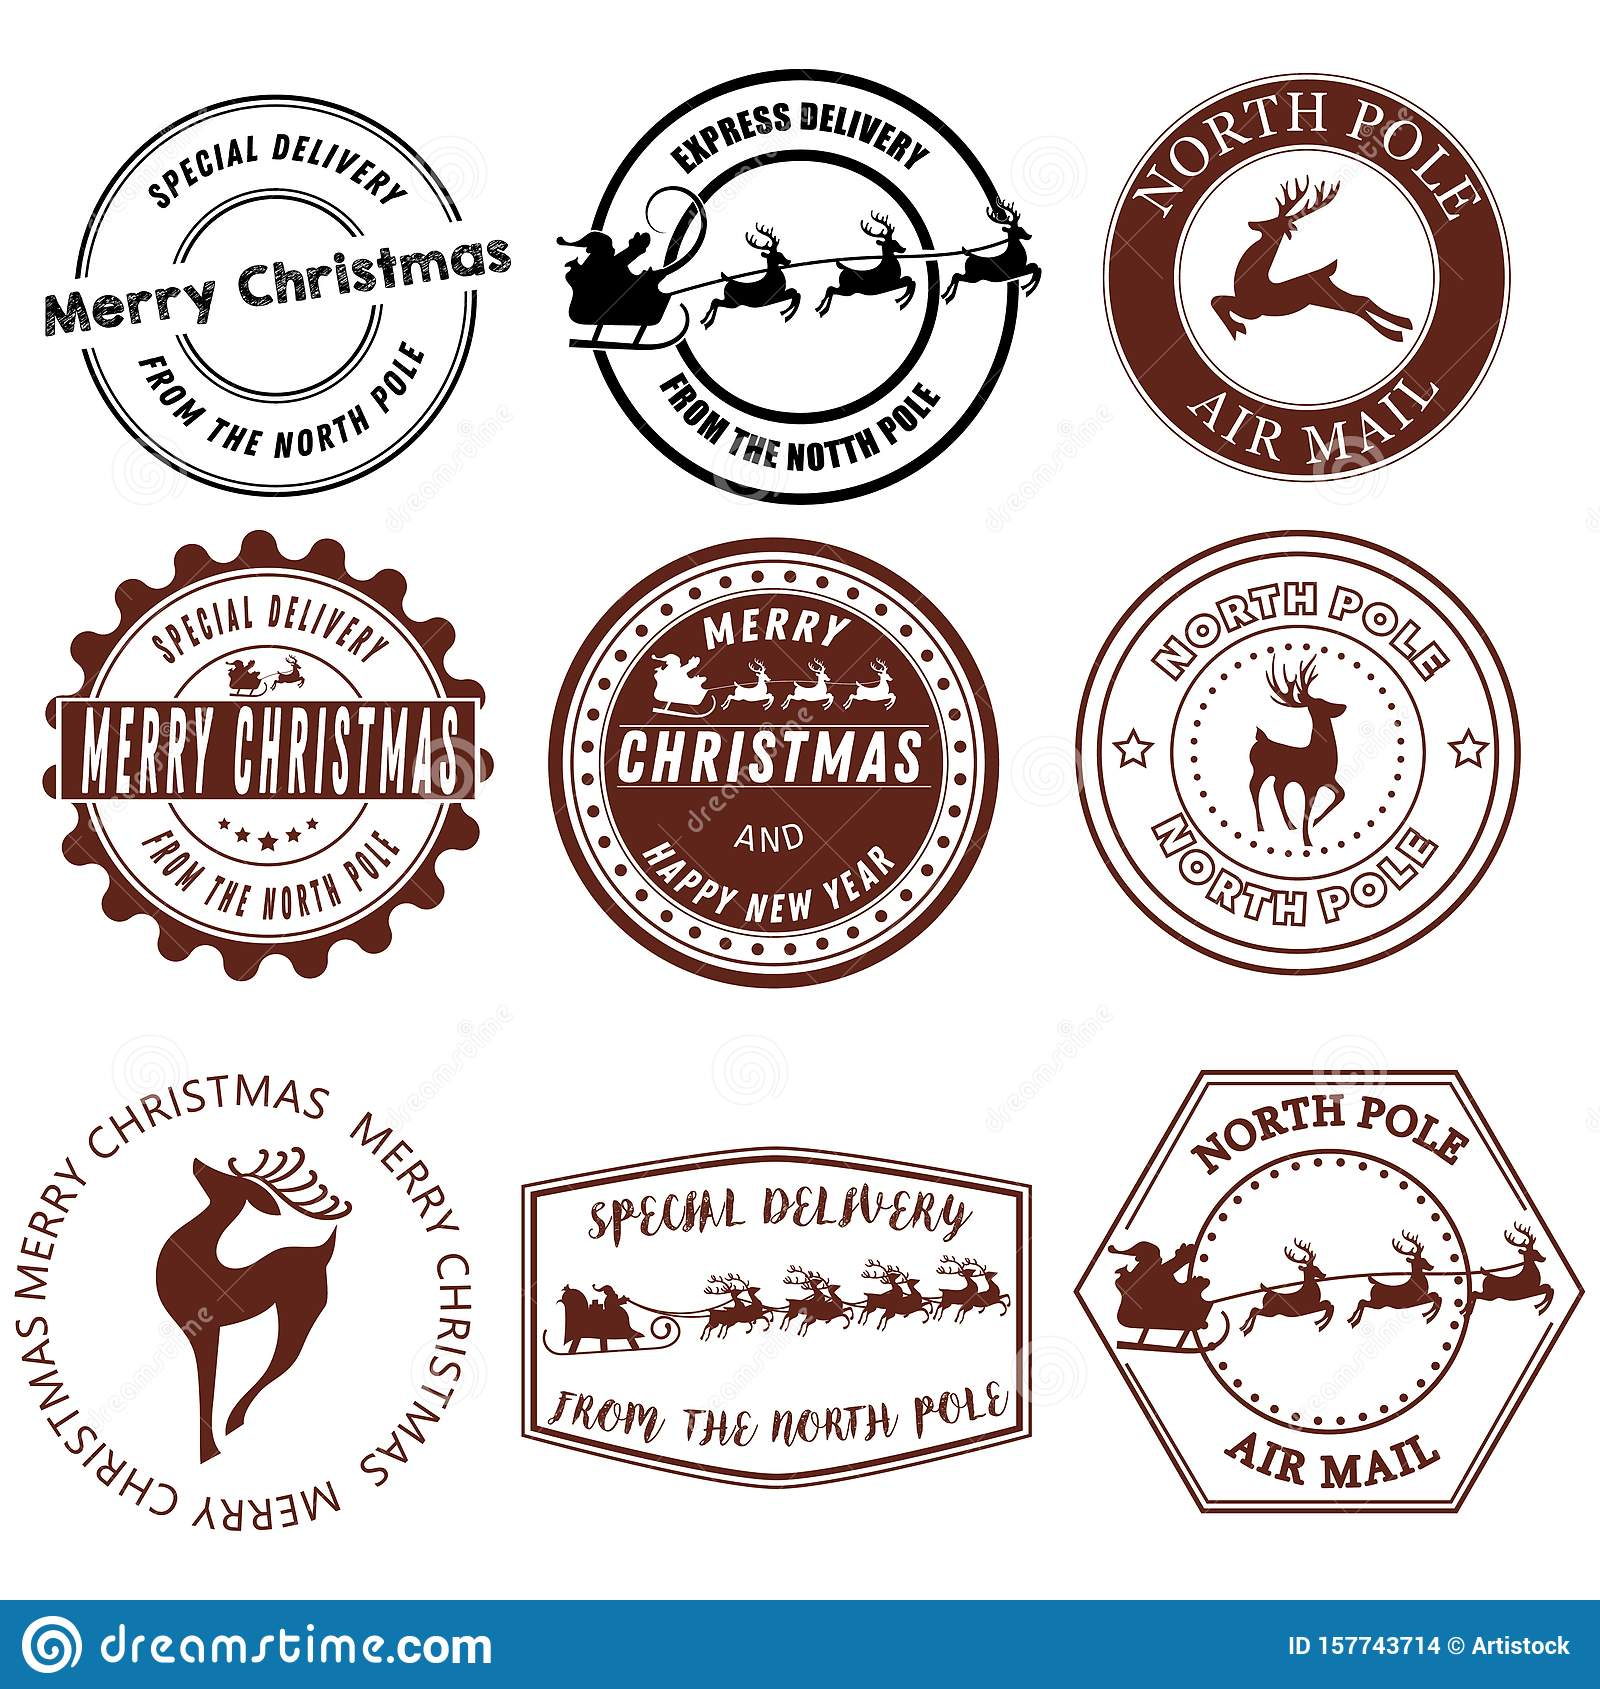 North Pole Mail Stamp Clip Art | Christmas stamps, Christmas lettering,  Wedding stamp